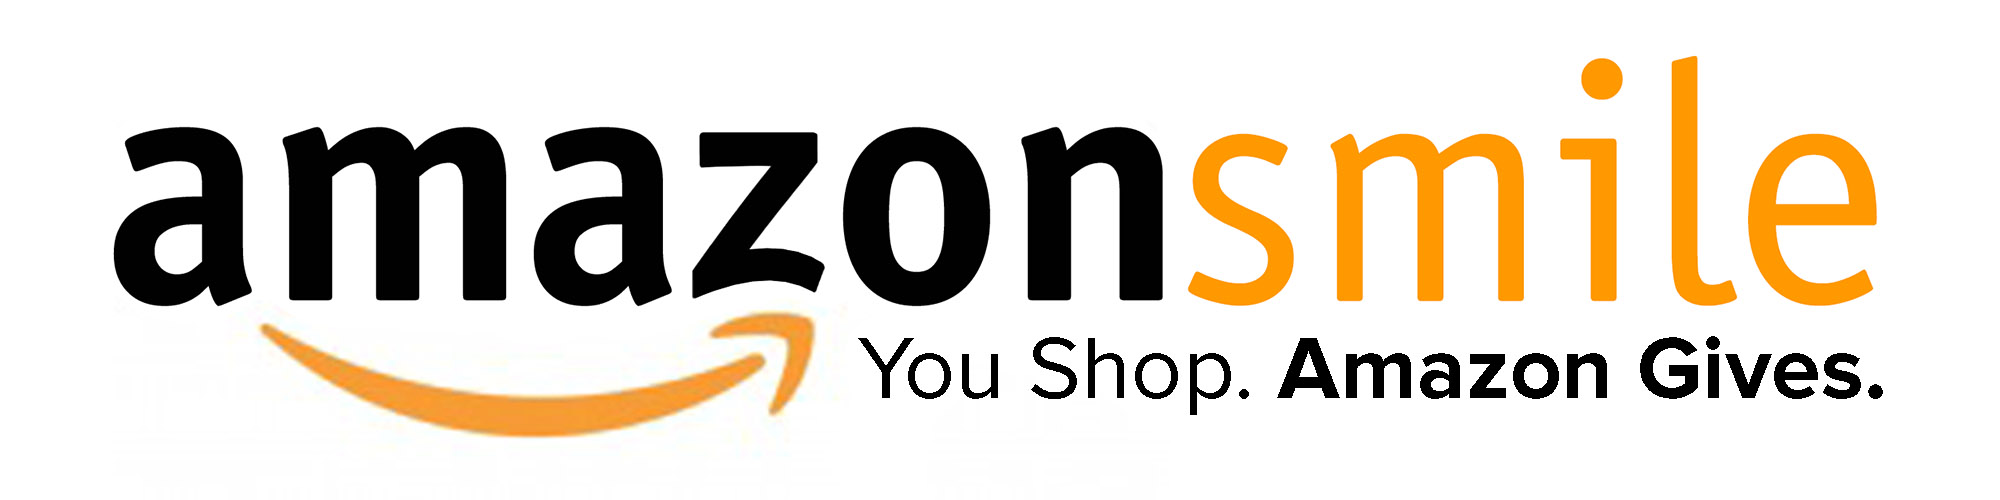 Amazon Smile logo. When you shop, Amazon will give to Garden State Council or the non-profit of your choice.